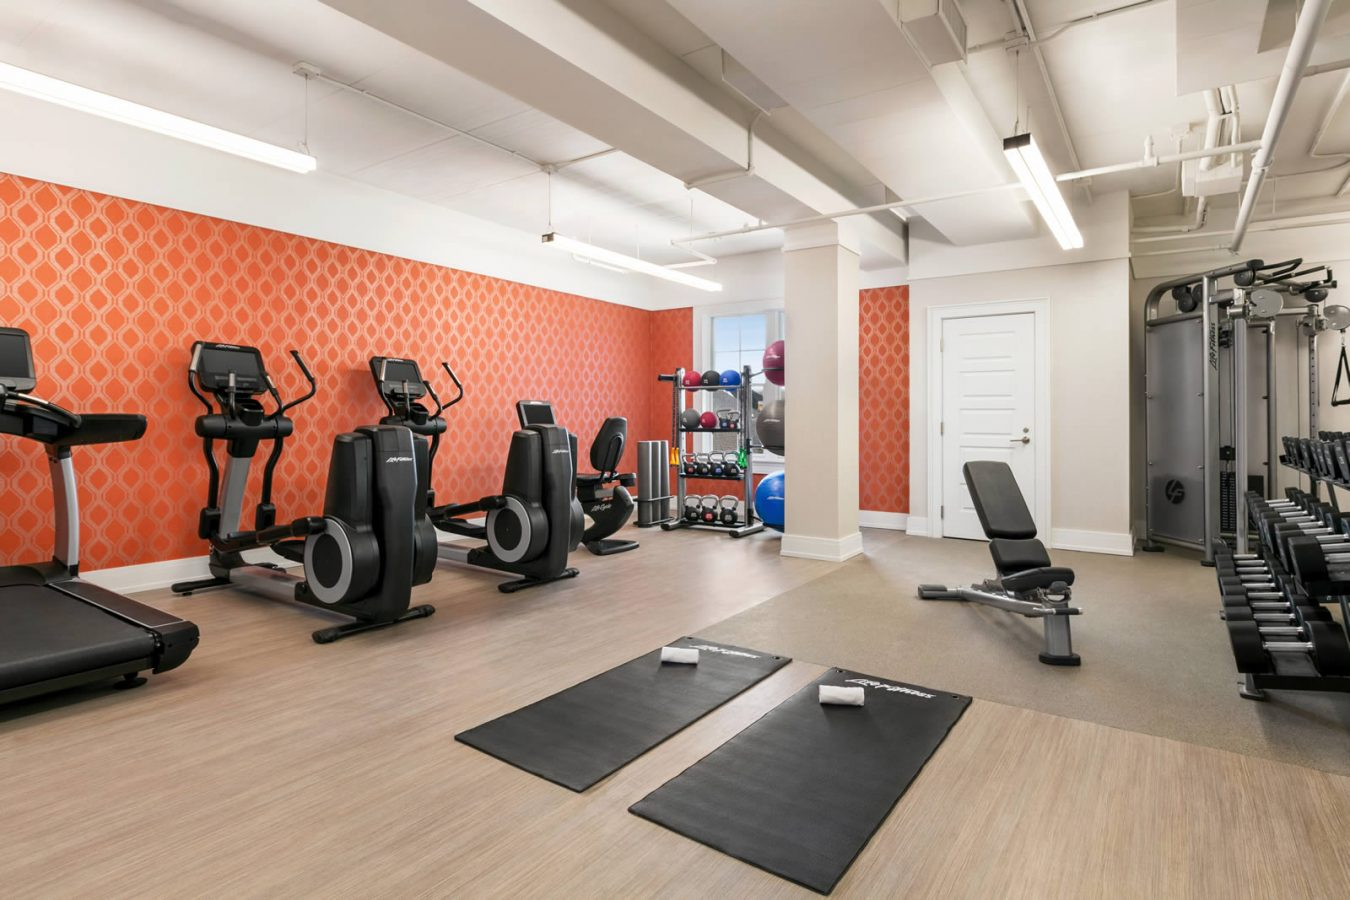 Fitness center at the Hotel Harpeth